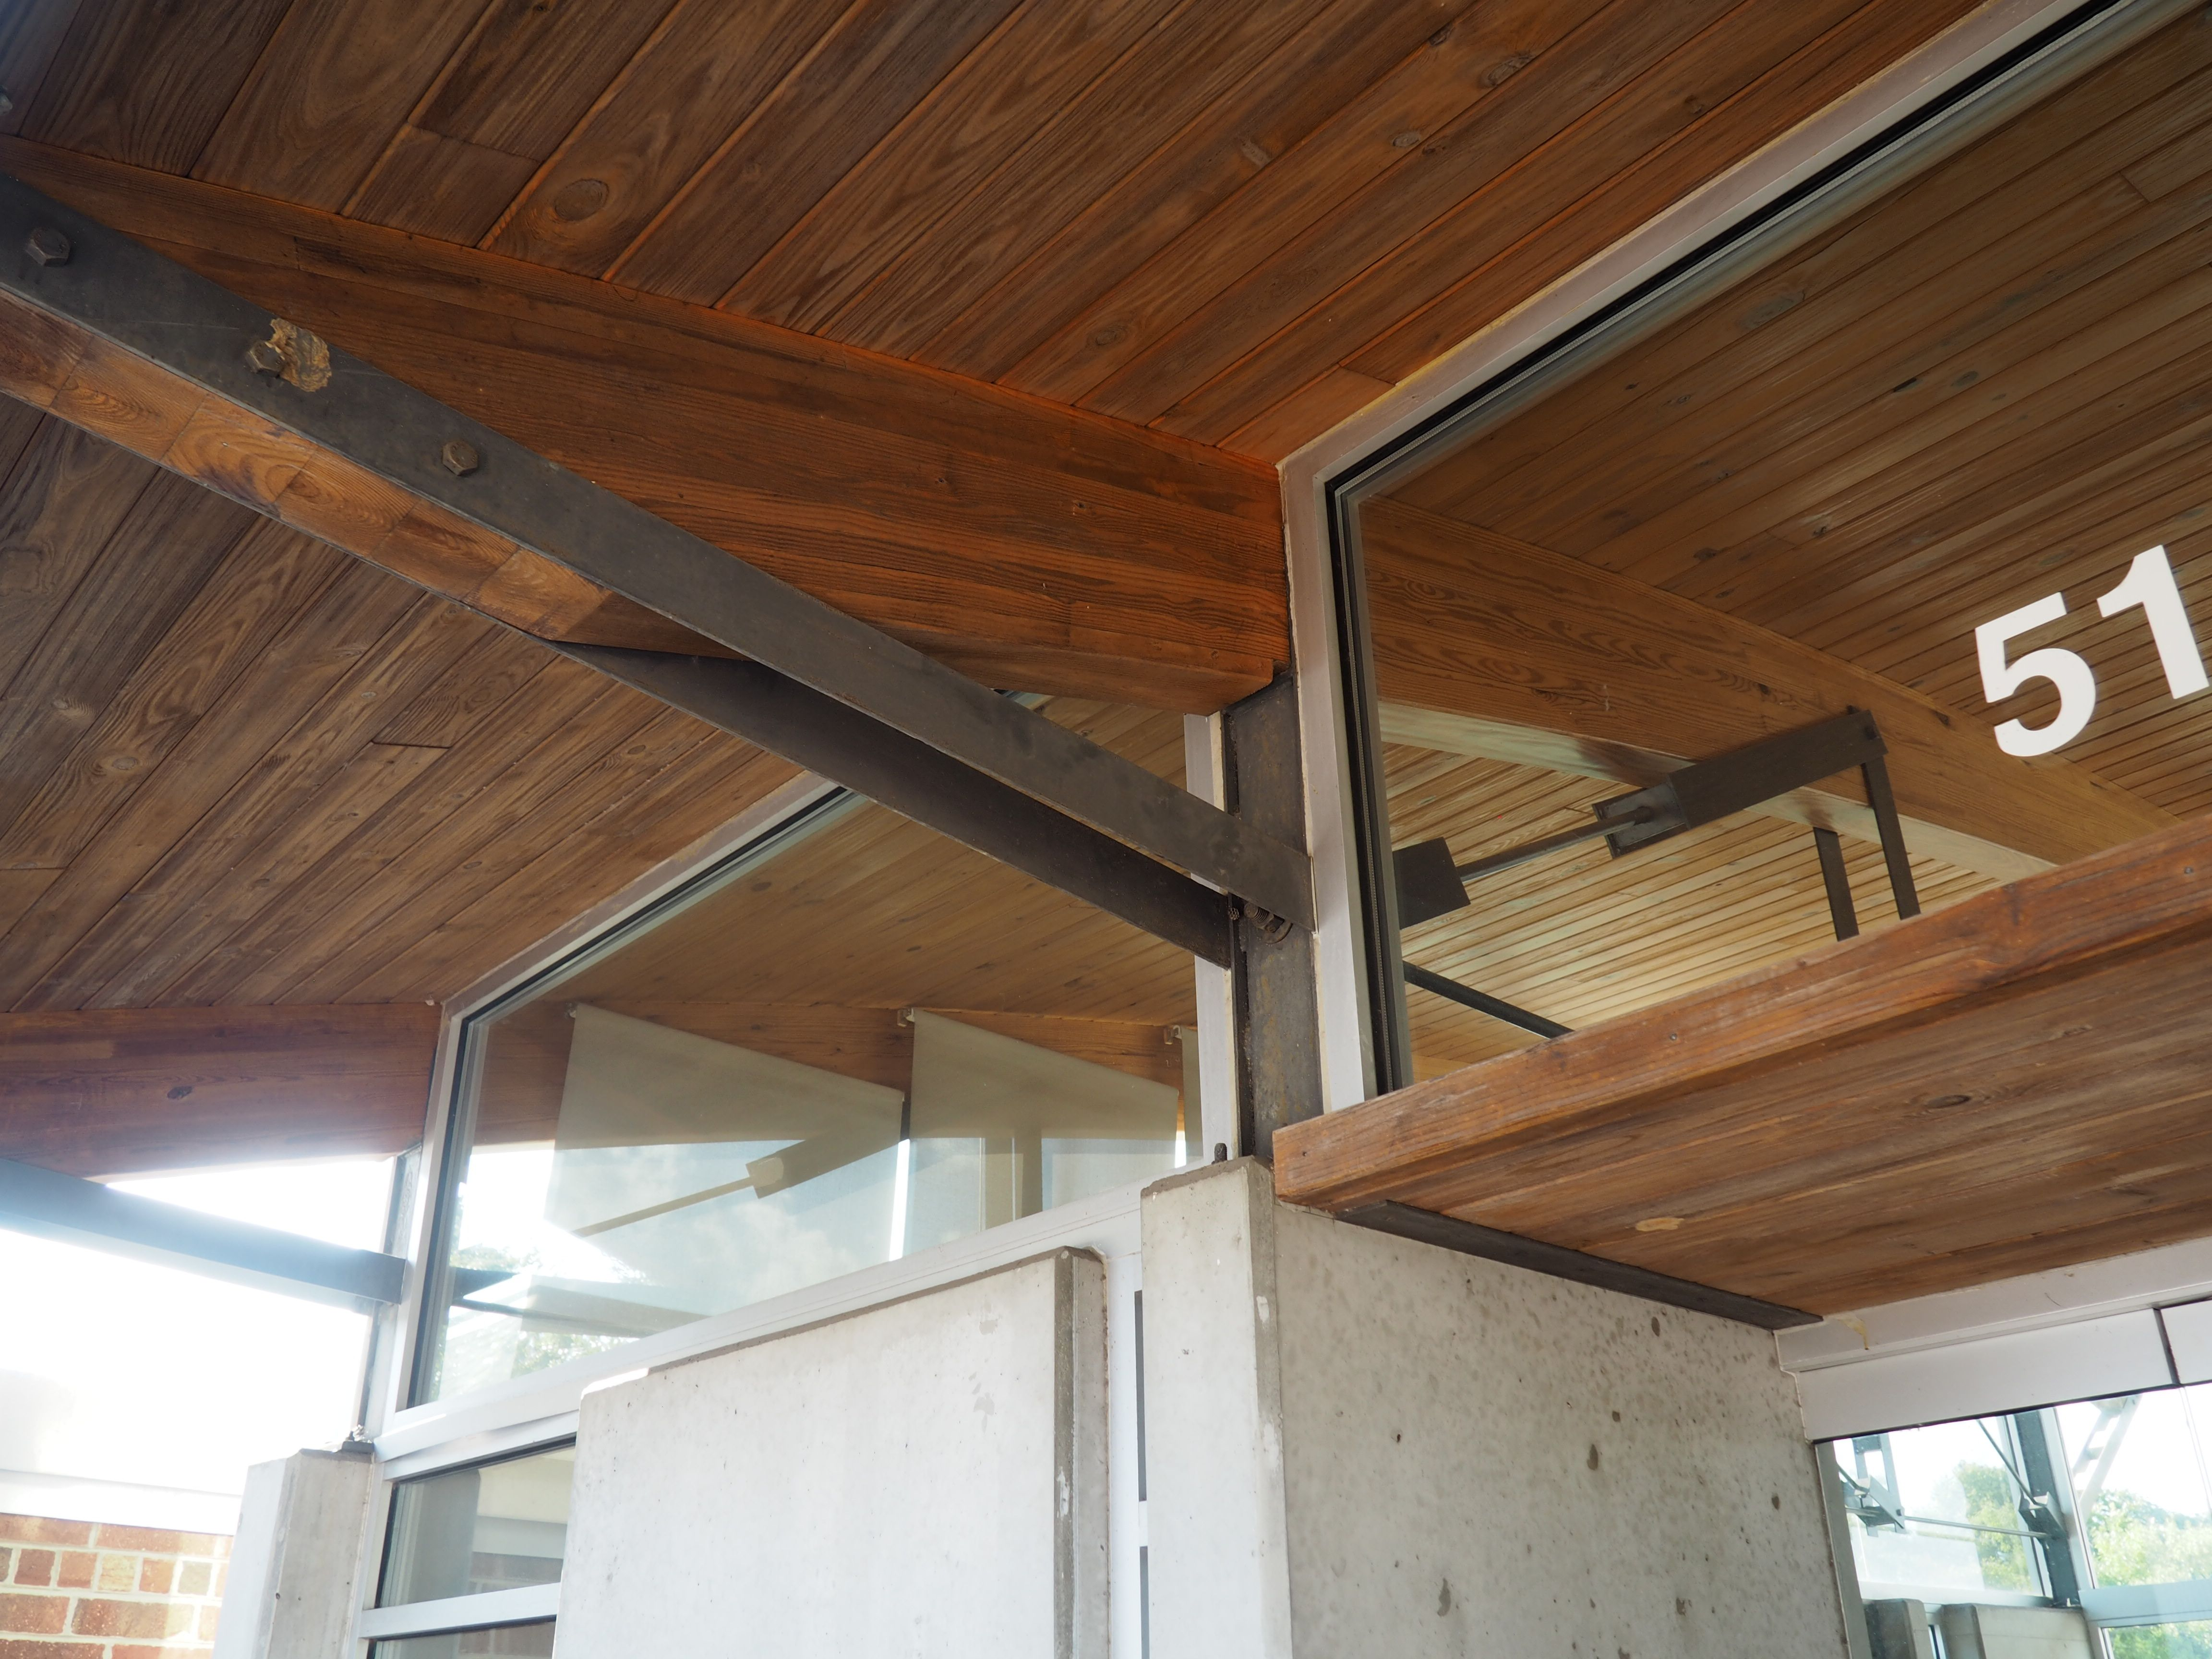 Decorative Ceiling Trusses | Shelly Lighting |Modern Wood Trusses